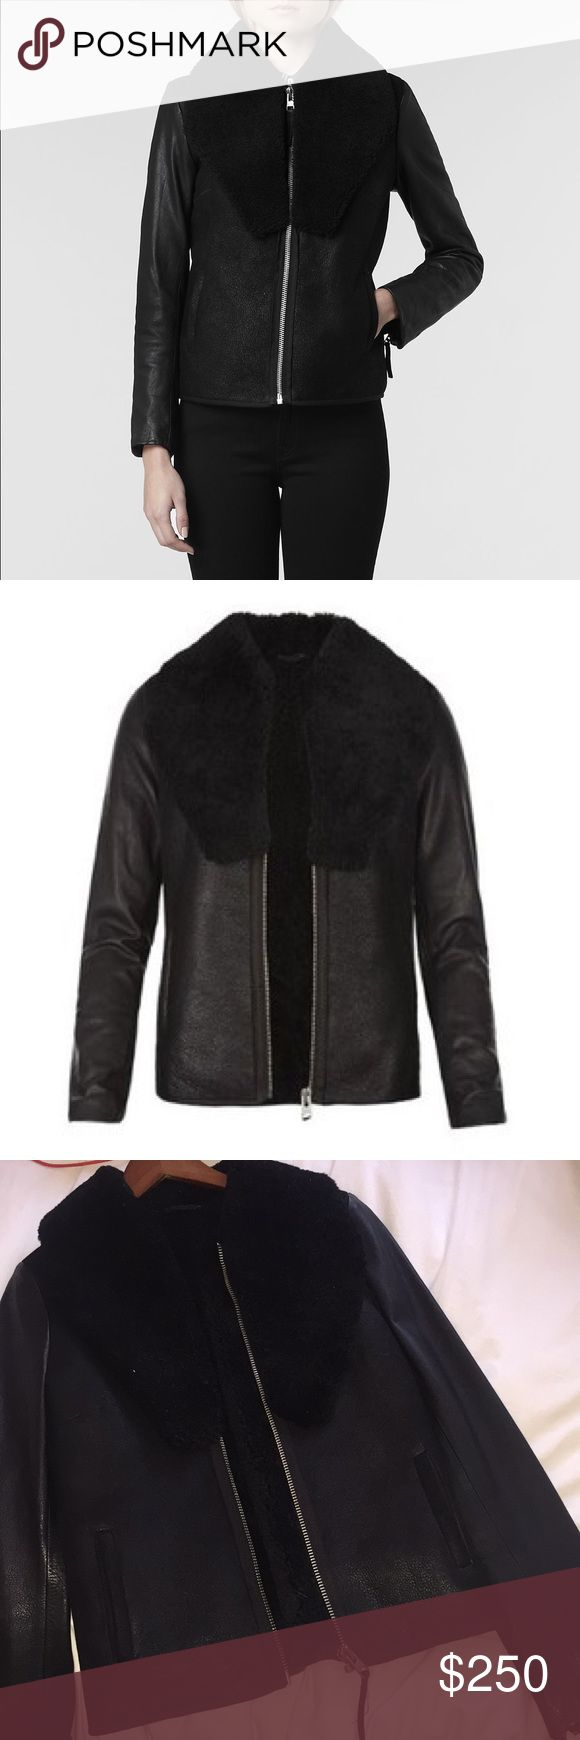 new allsaints bartlett jacket- leather & shearling gorgeous allsaints jacket with suede front and back, leather sleeves, shearling collar and fully lined with shearling. never worn. size US 4. absolutely gorgeous piece All Saints Jackets & Coats